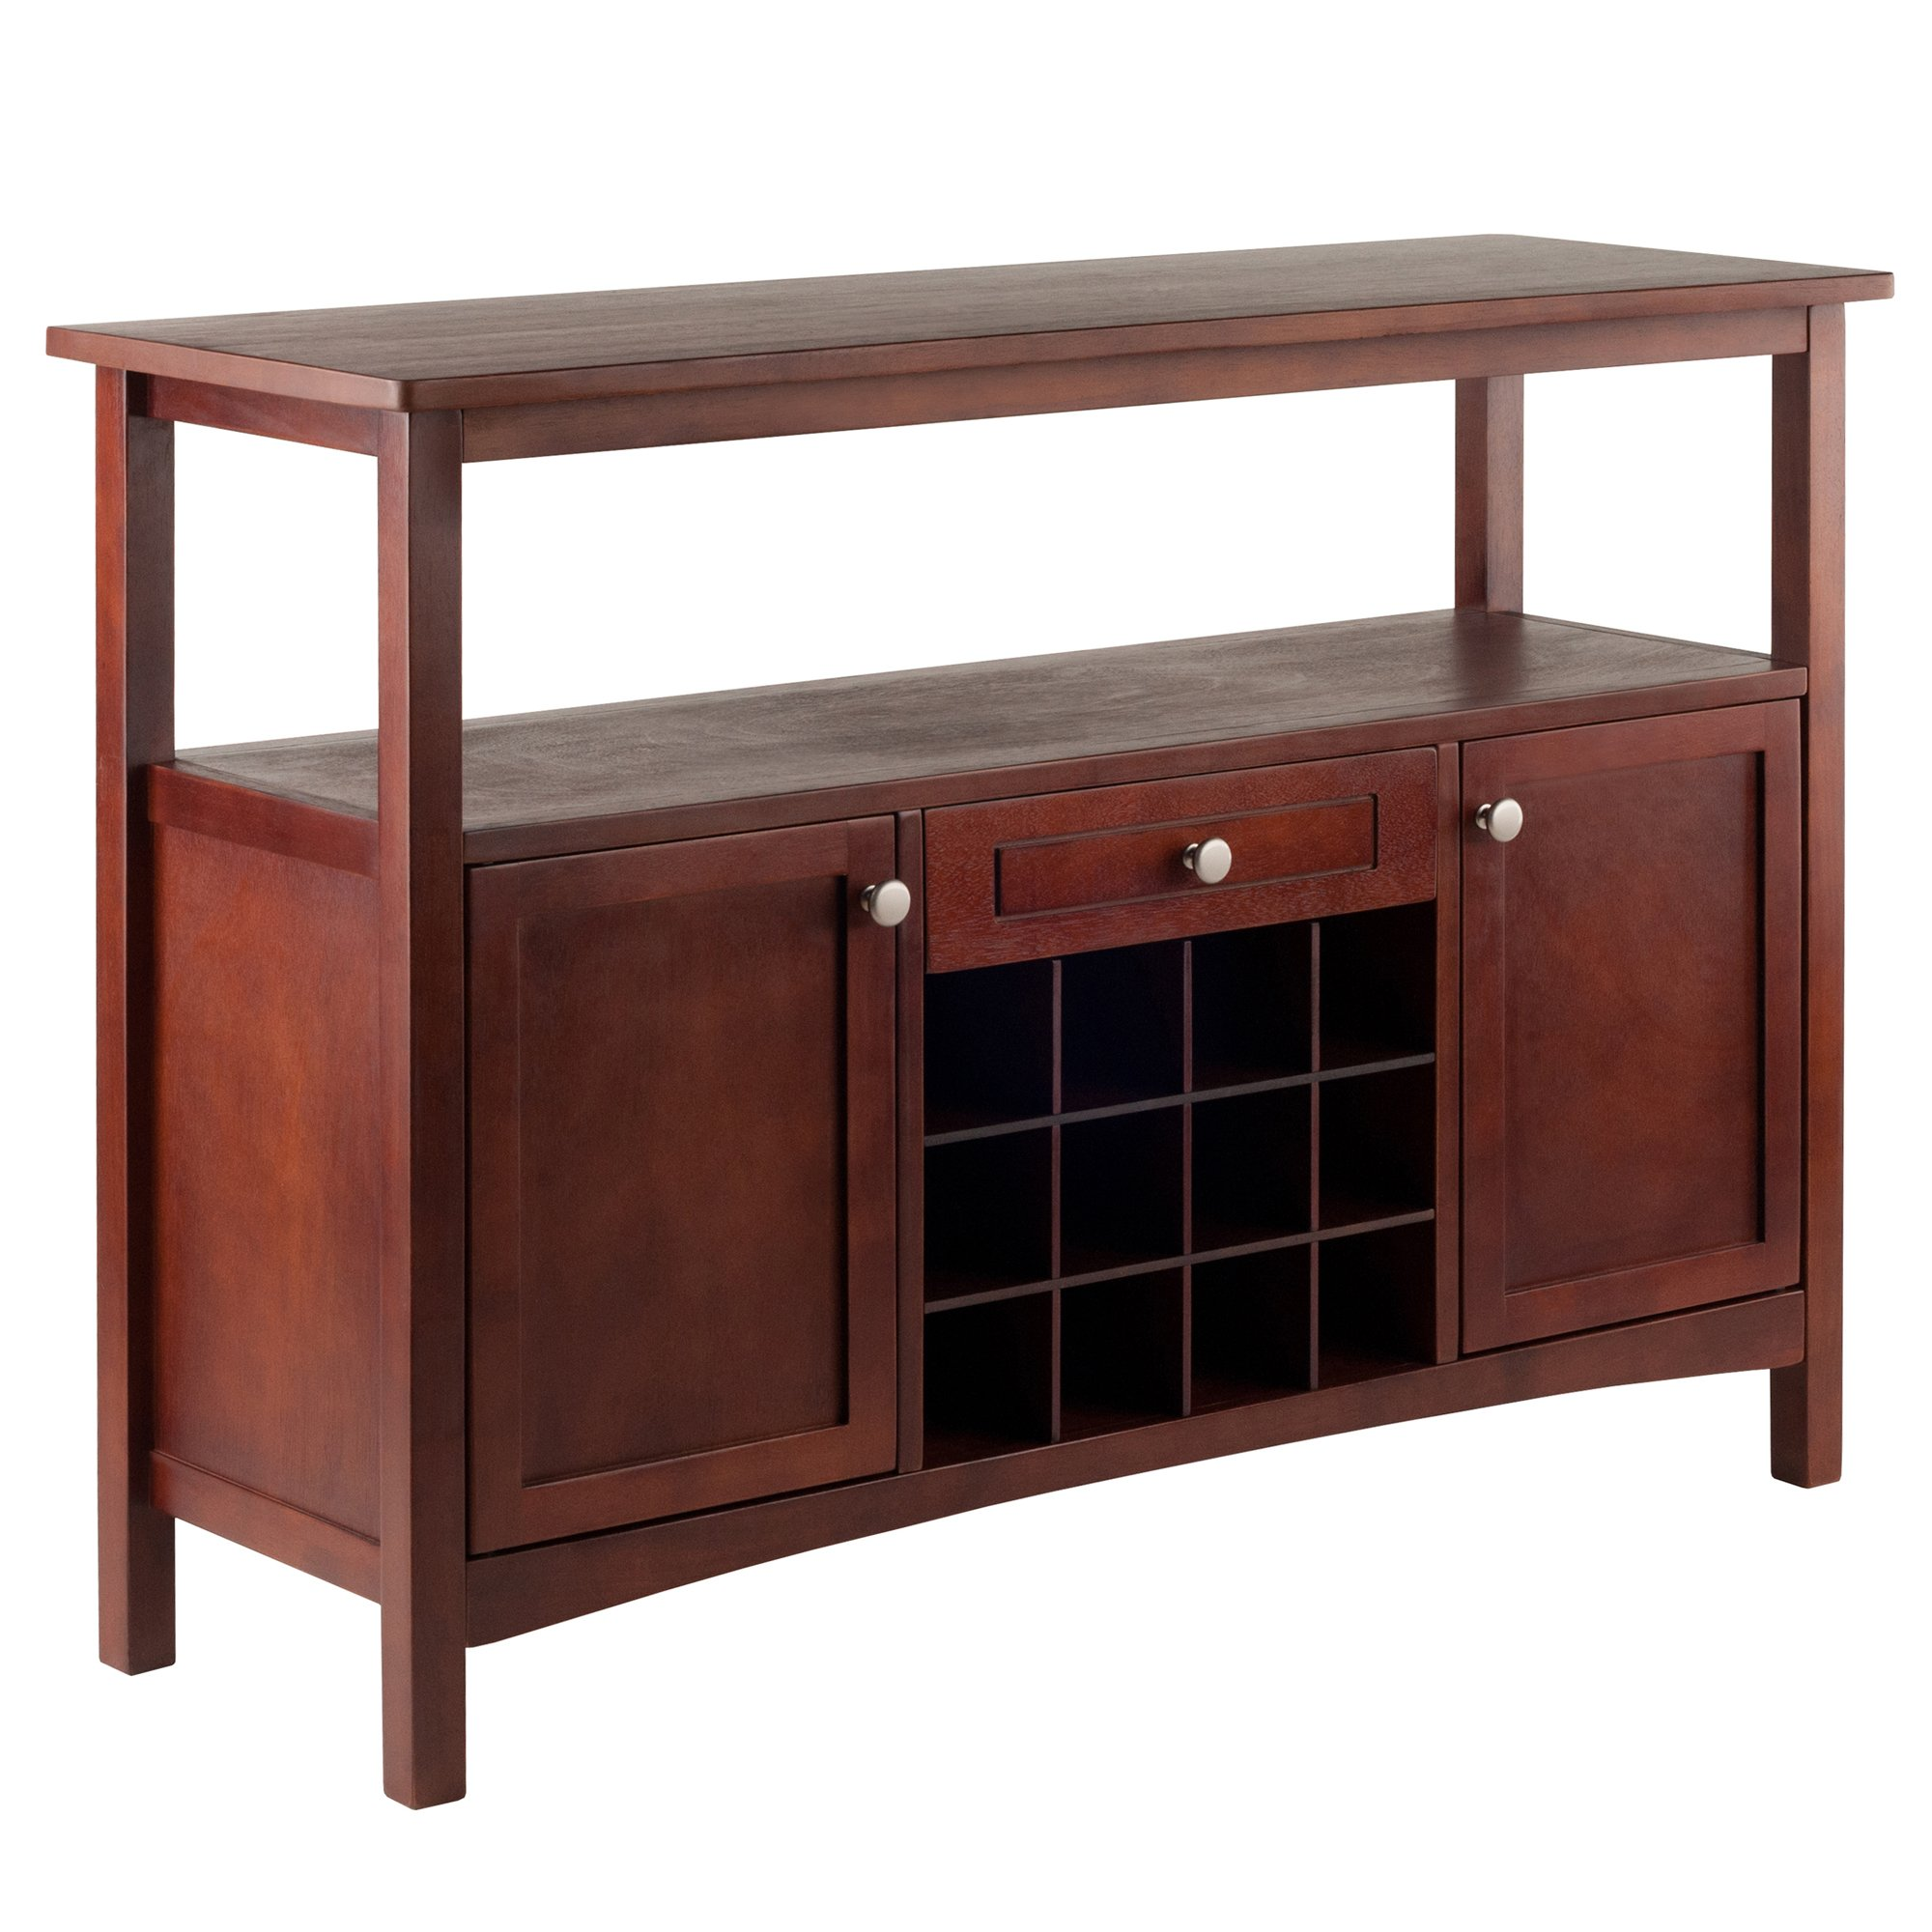 Winsome Colby Buffet Cabinet, Walnut, 45.51x15.75x32.05 by Winsome